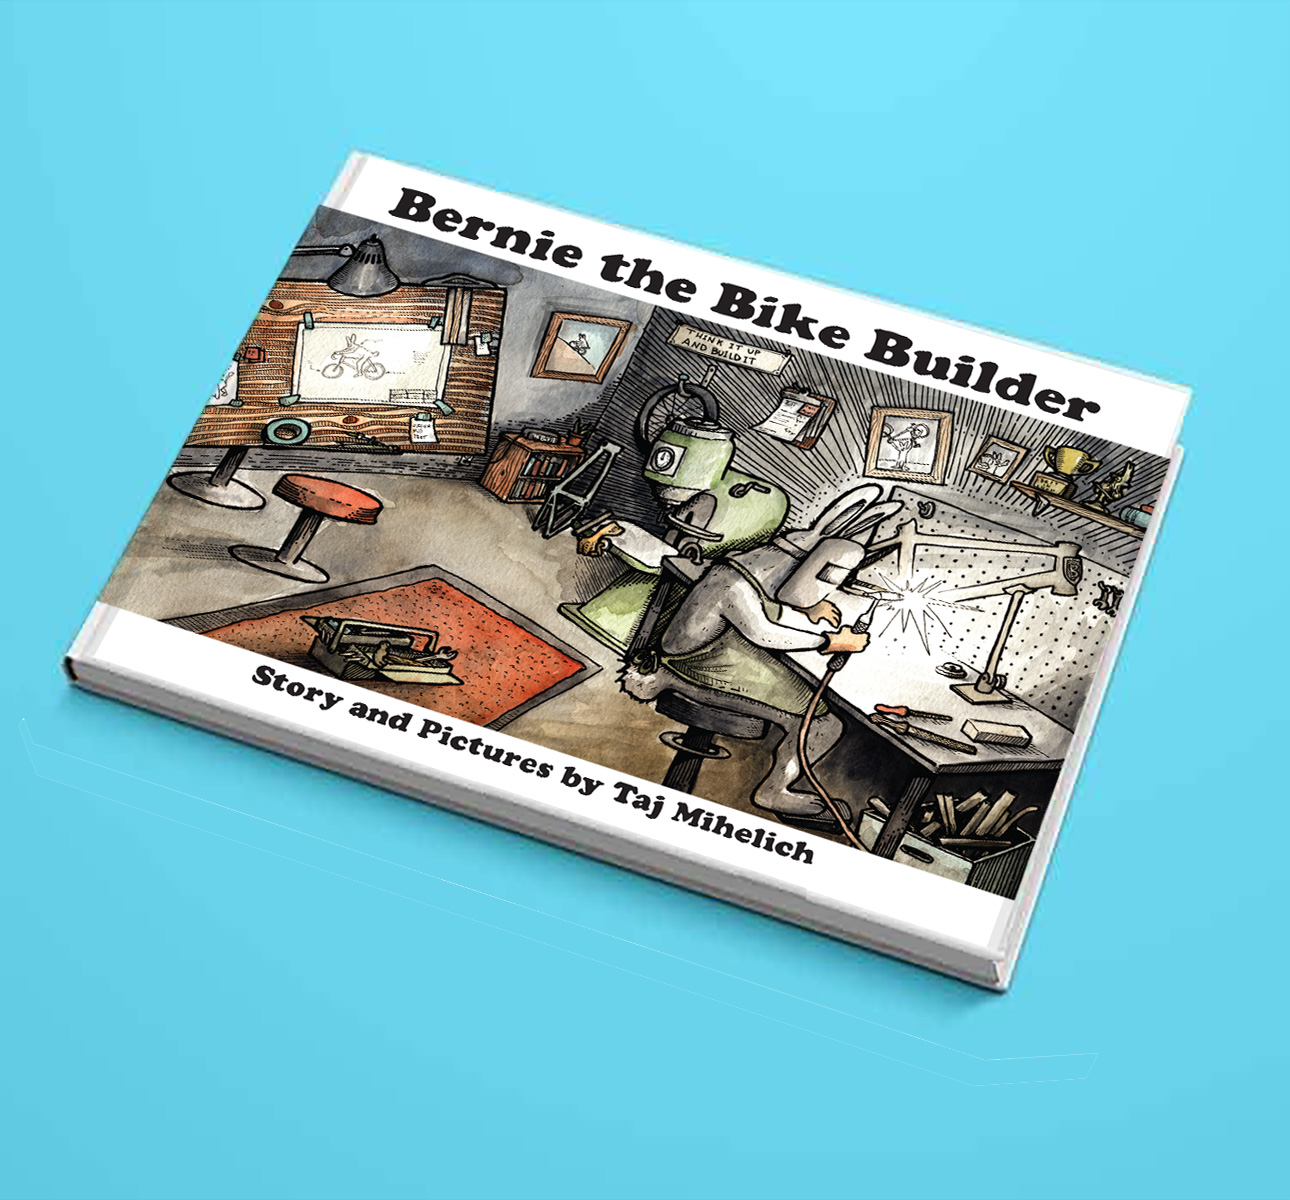 Bernie the Bike Builder Sale!